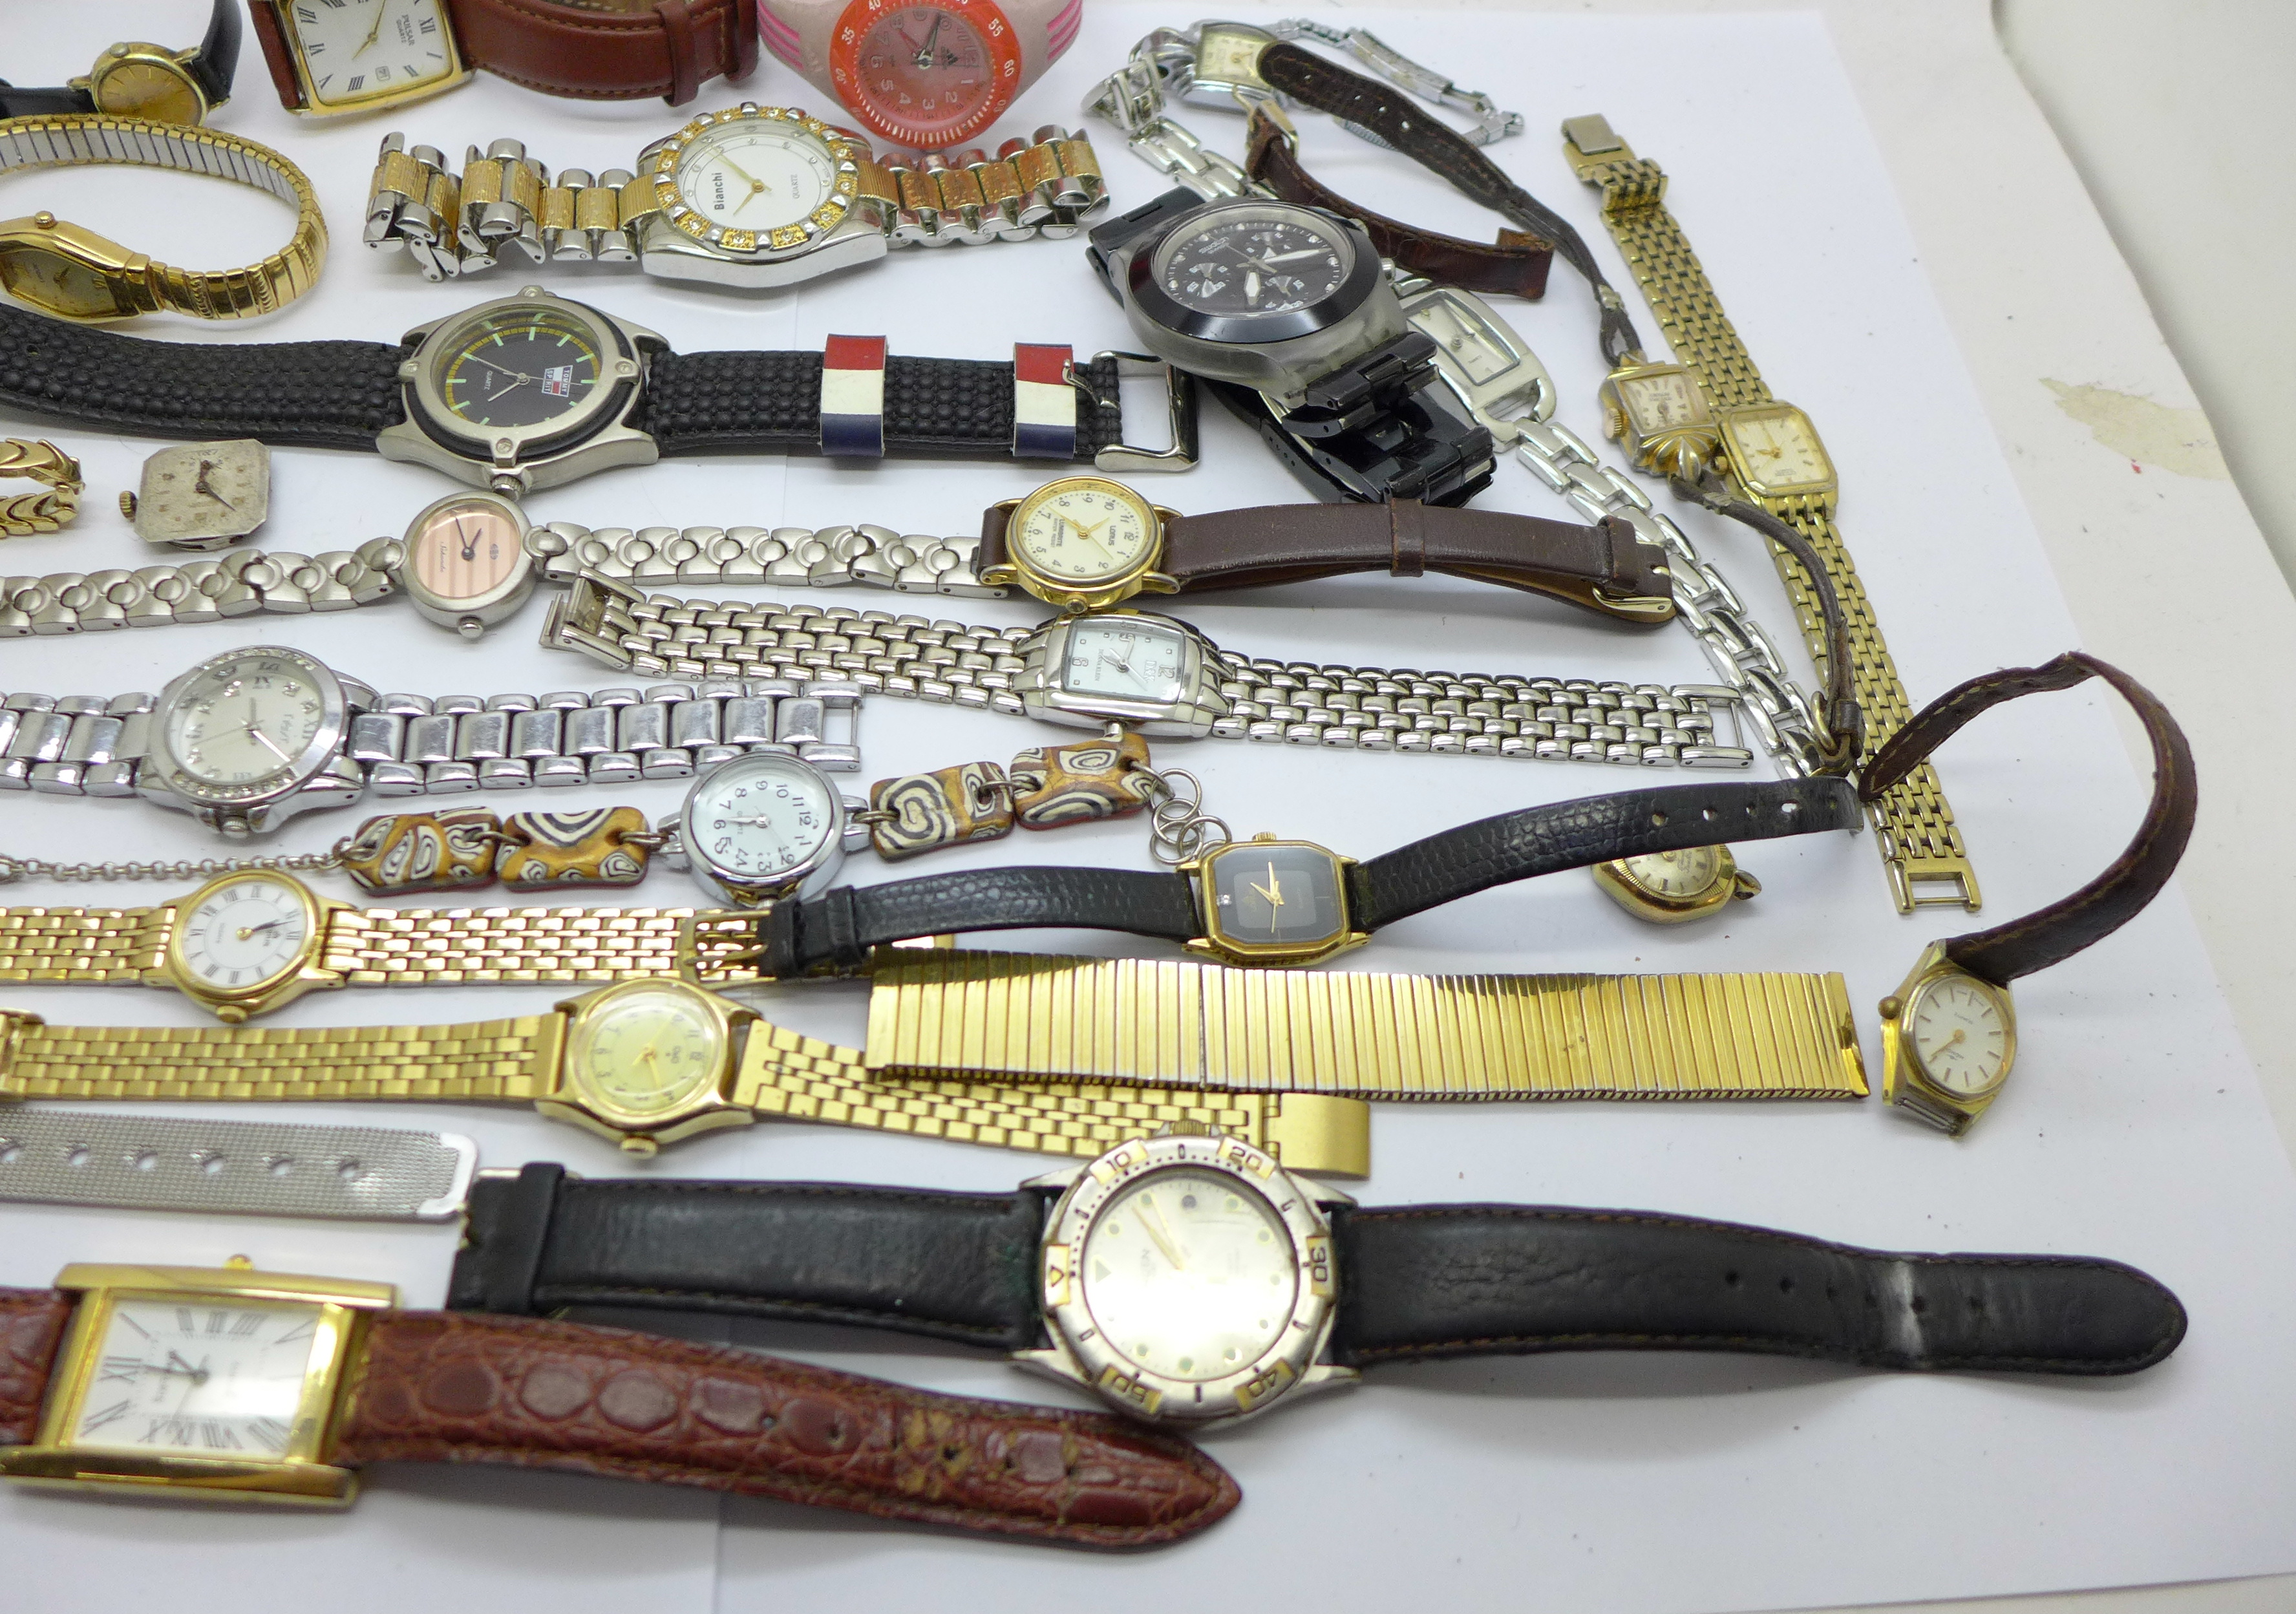 Wristwatches, pocket watches, etc., including Swatch and Seiko - Image 5 of 5